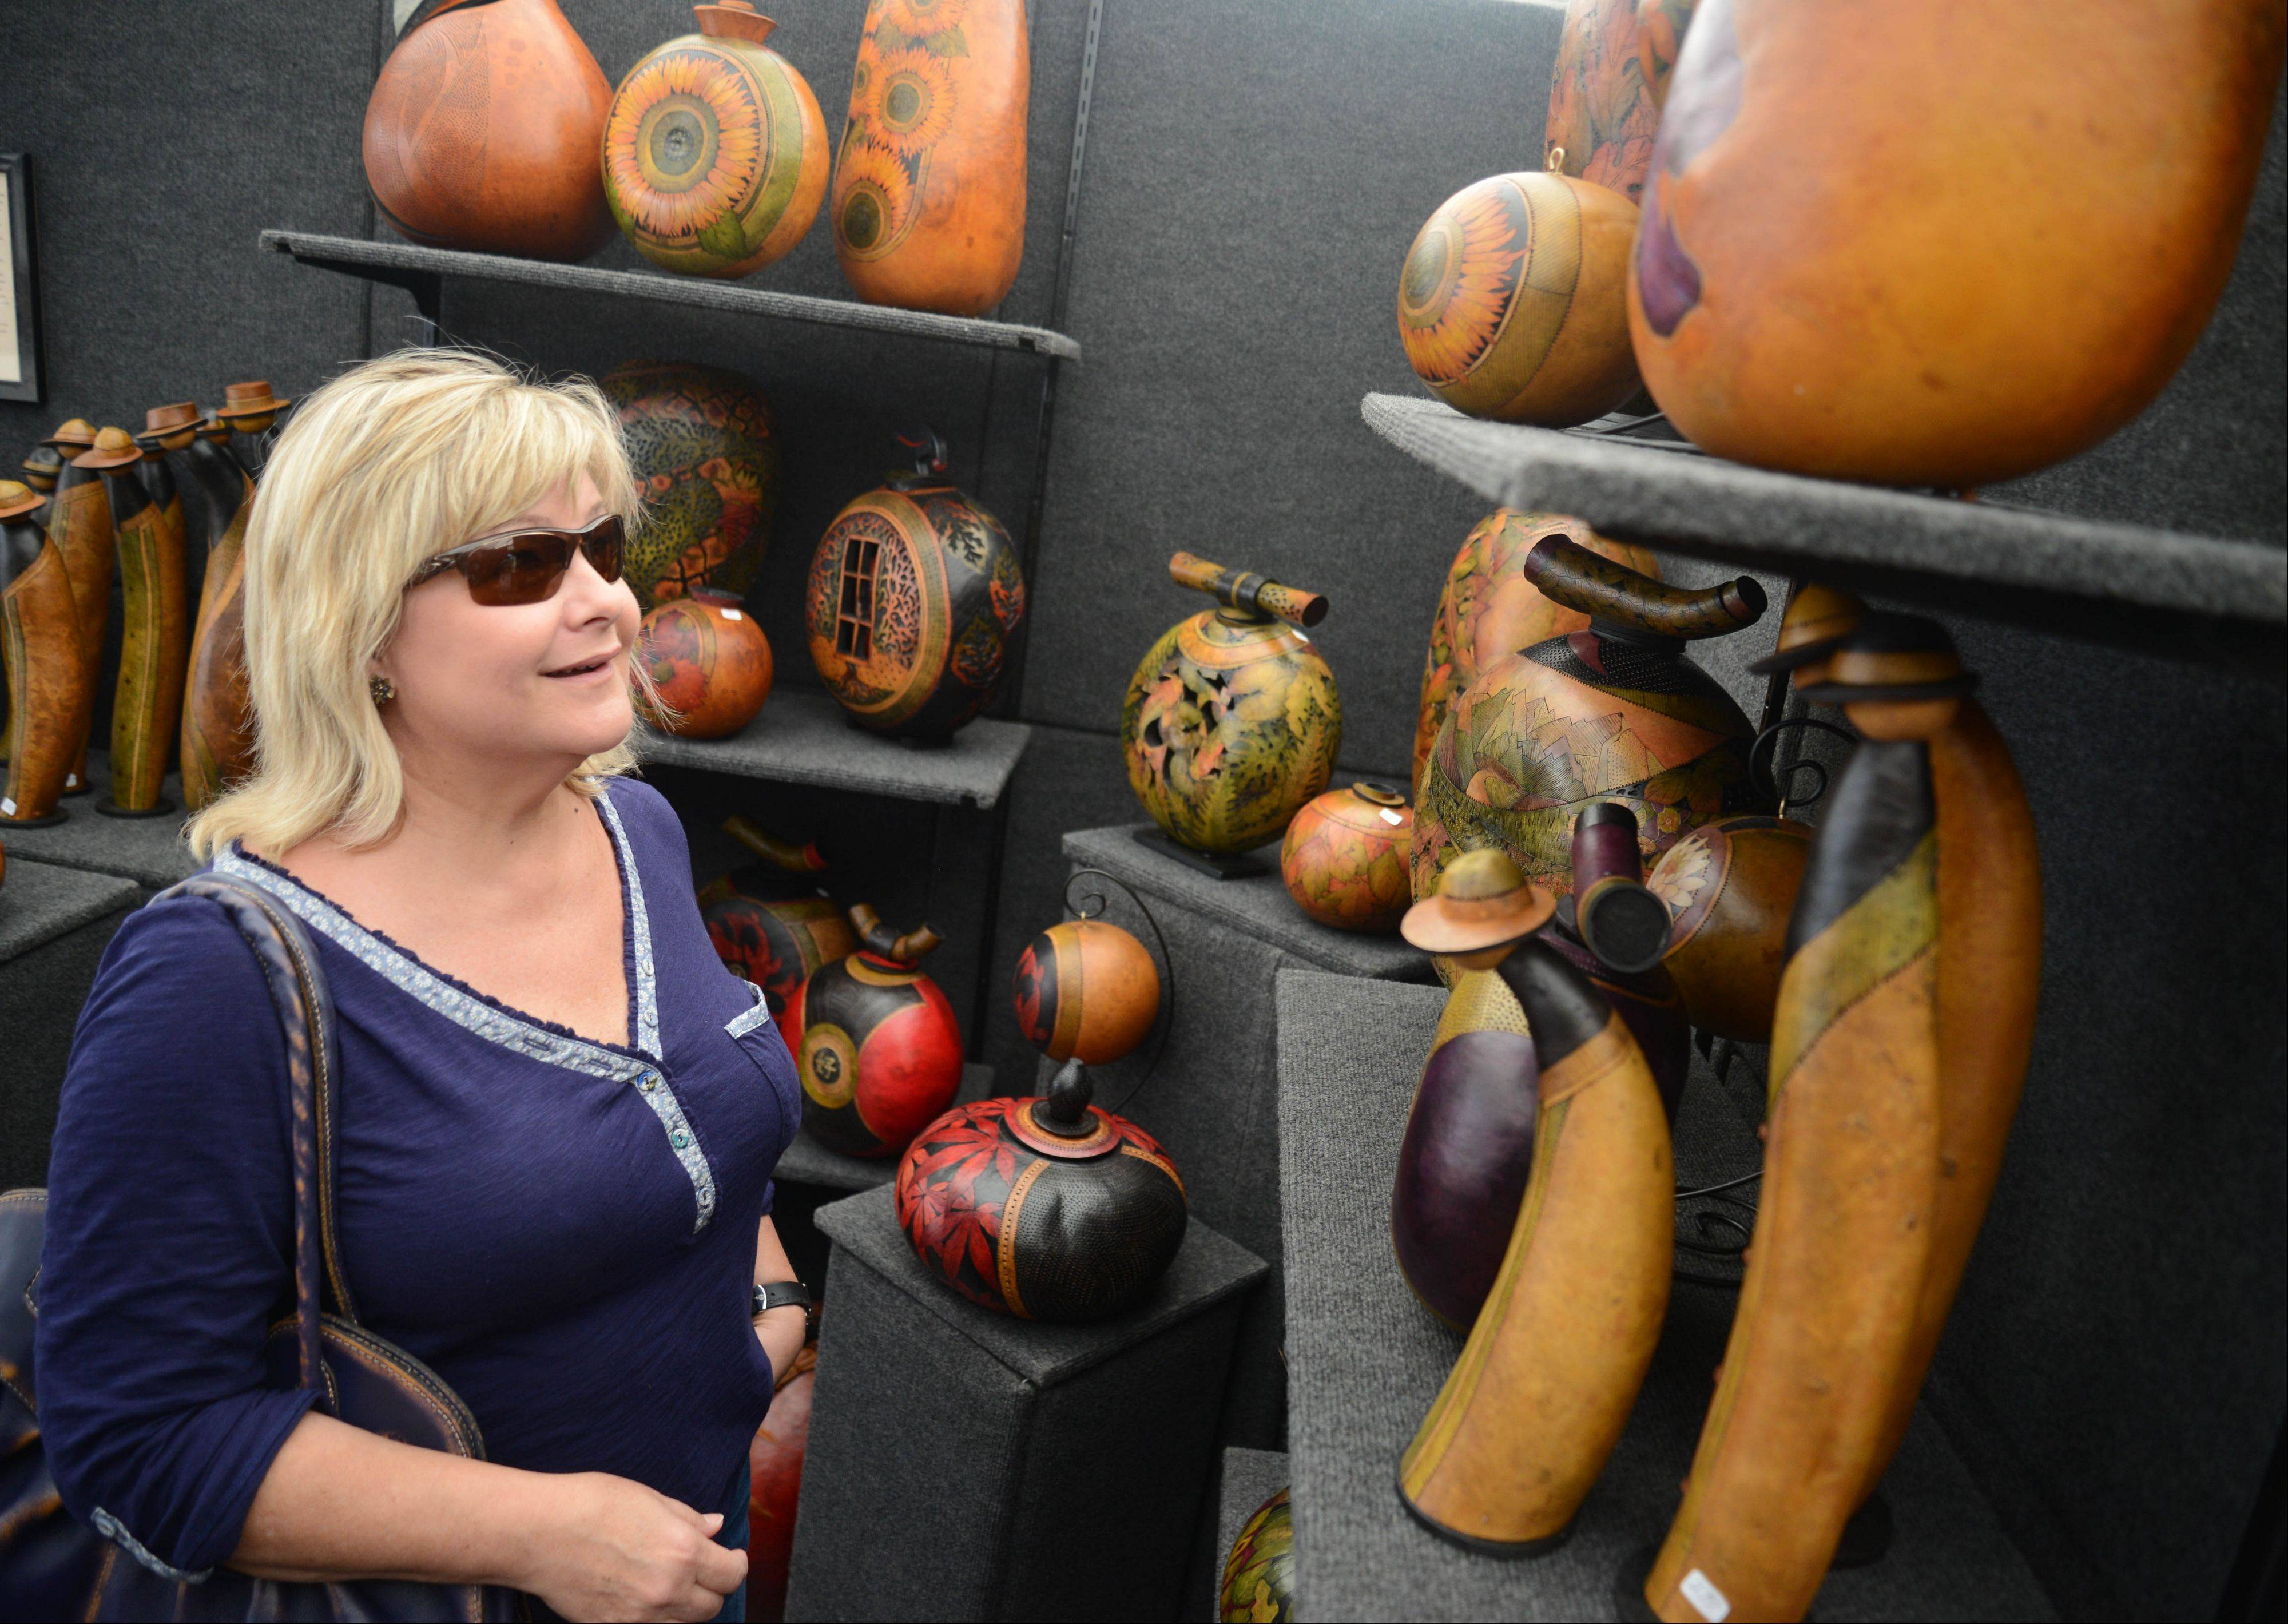 Linda Thoma of Naperville looks at gourd art by Beth and Steve Radtke of Georgia on Saturday during the Naperville Art League's annual Riverwalk Fine Art Fair in Naperville.